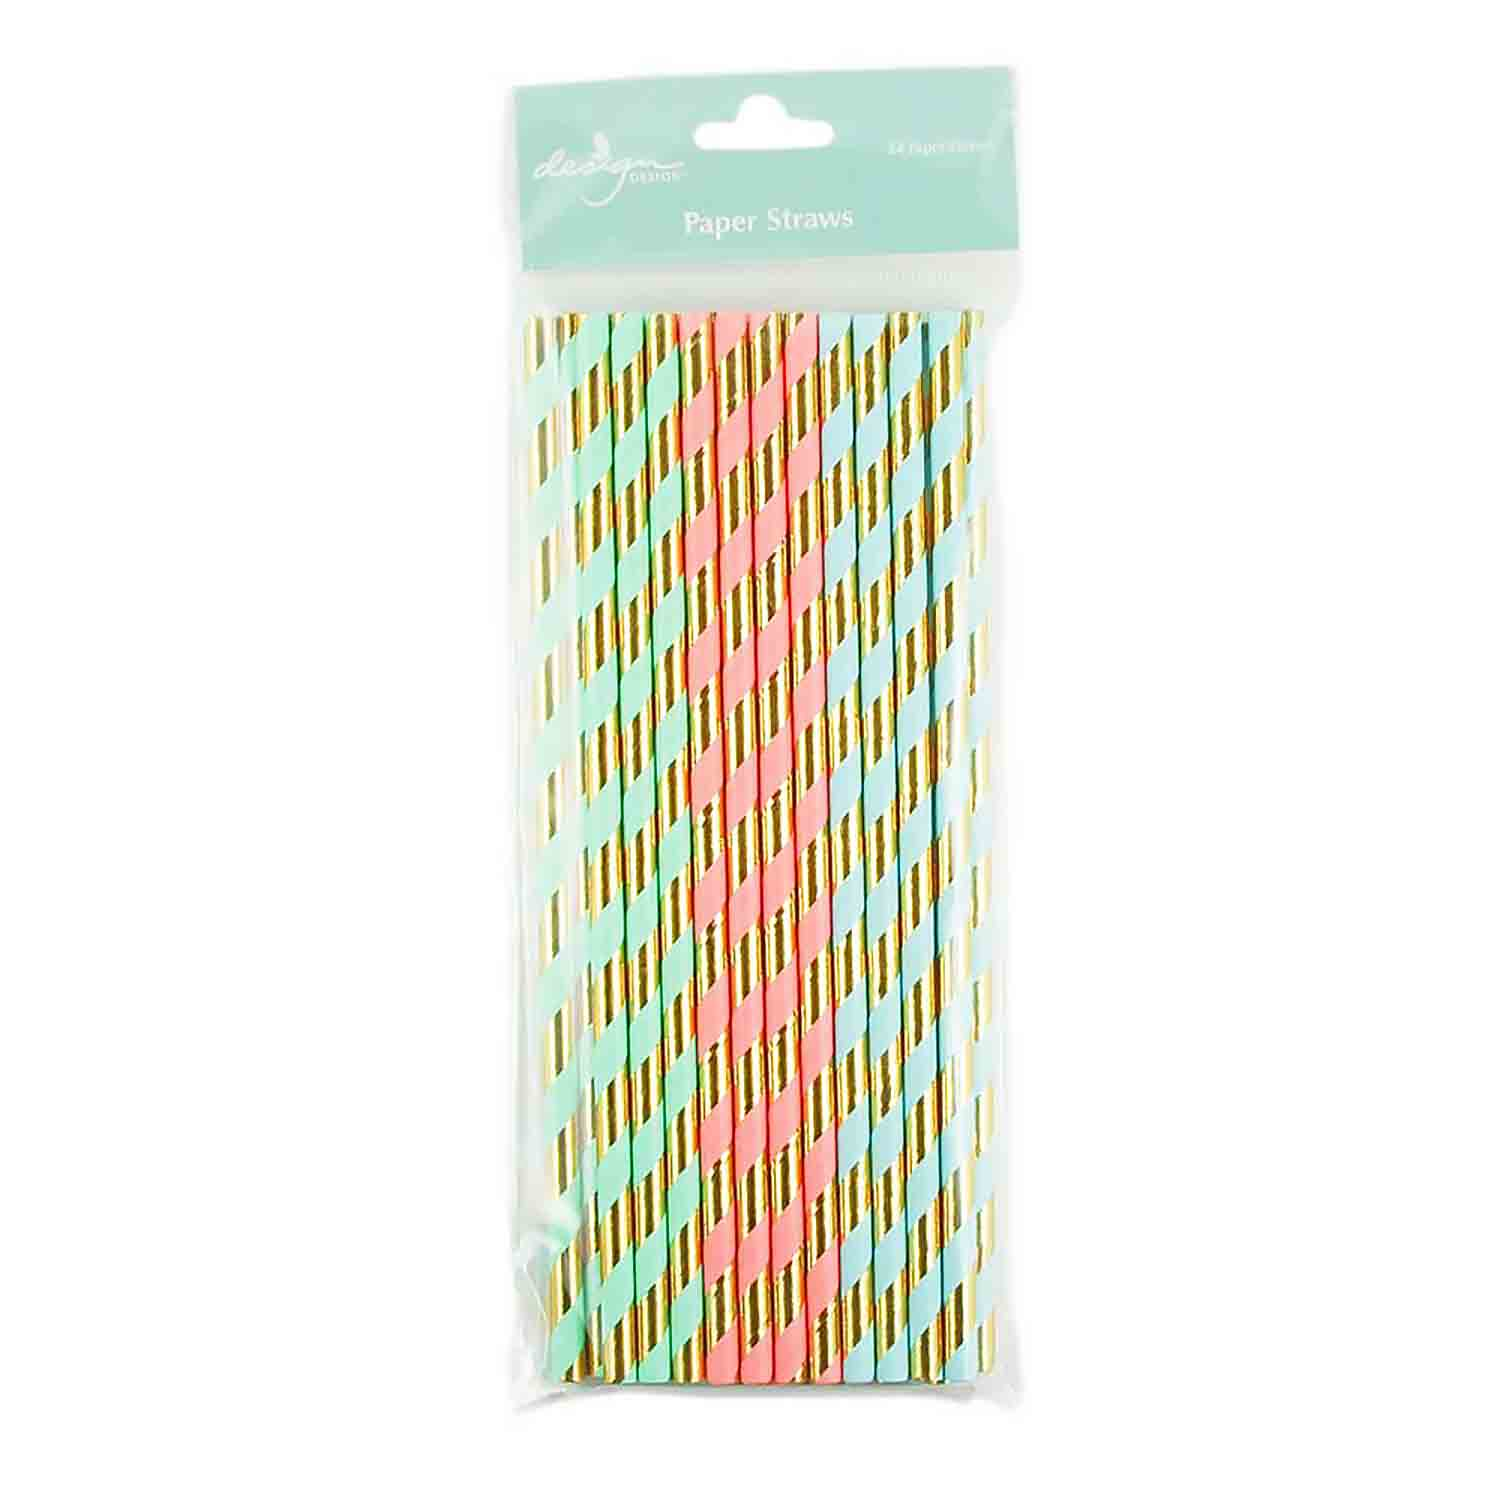 Pastel with Gold Stripes Paper Straws